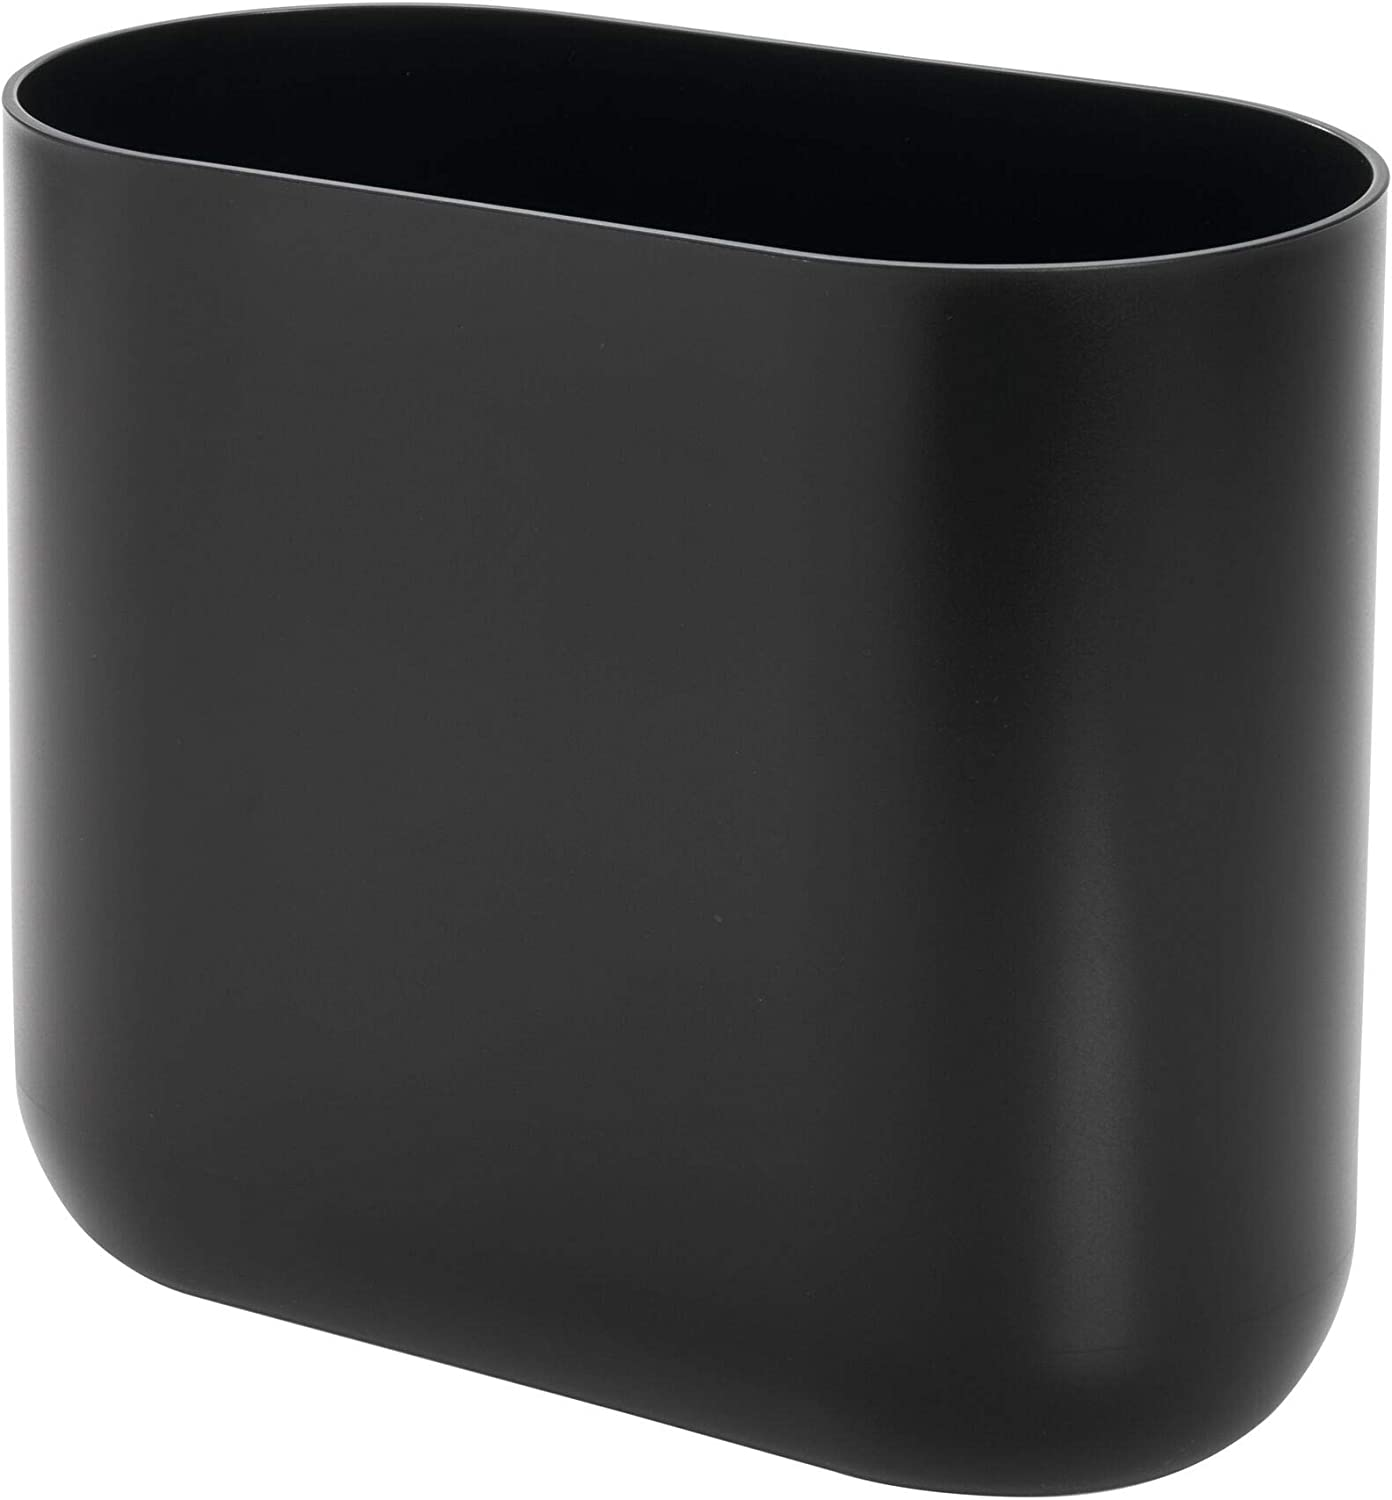 iDesign Cade Slim Bathroom Trash Can, for Bedroom, Kitchen, Office, Waste, Matte Black